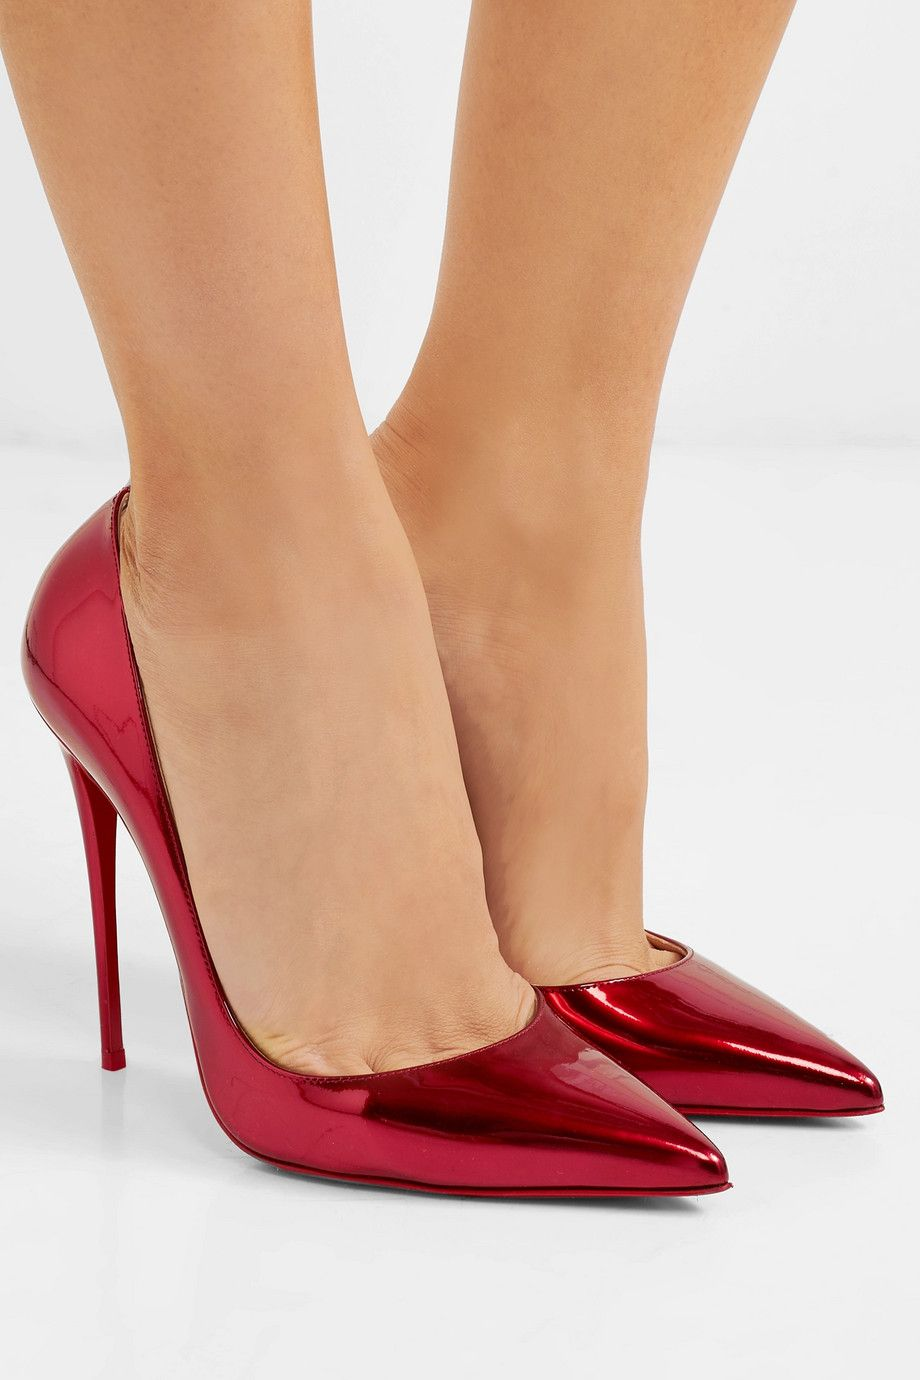 new arrival 195ff 2d88b Christian Louboutin - So Kate 120 metallic patent-leather ...